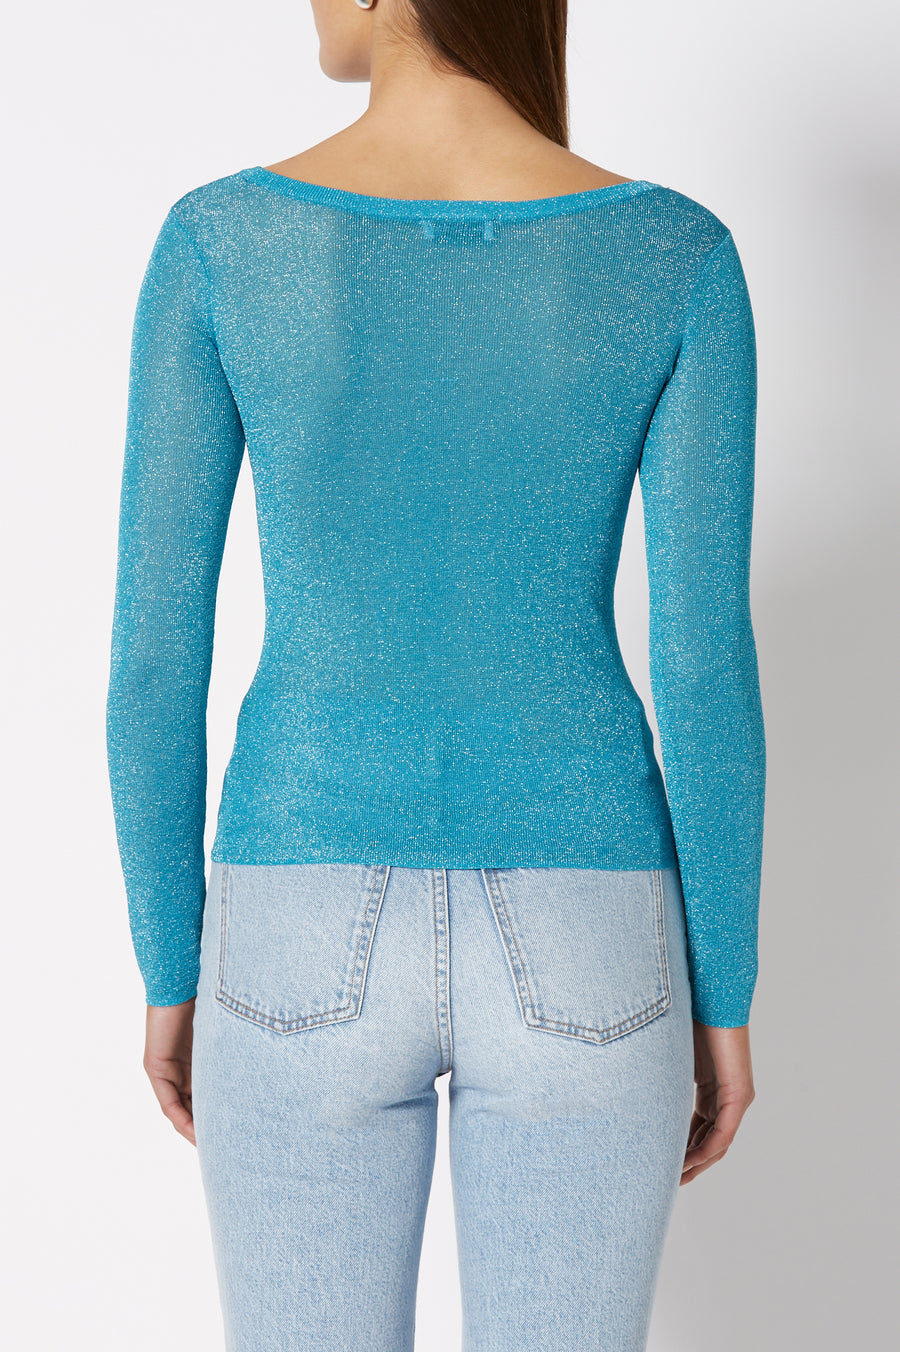 SPARKLE RIB BOAT NECK SWEATER AZURE, Slim fit, Boatneck